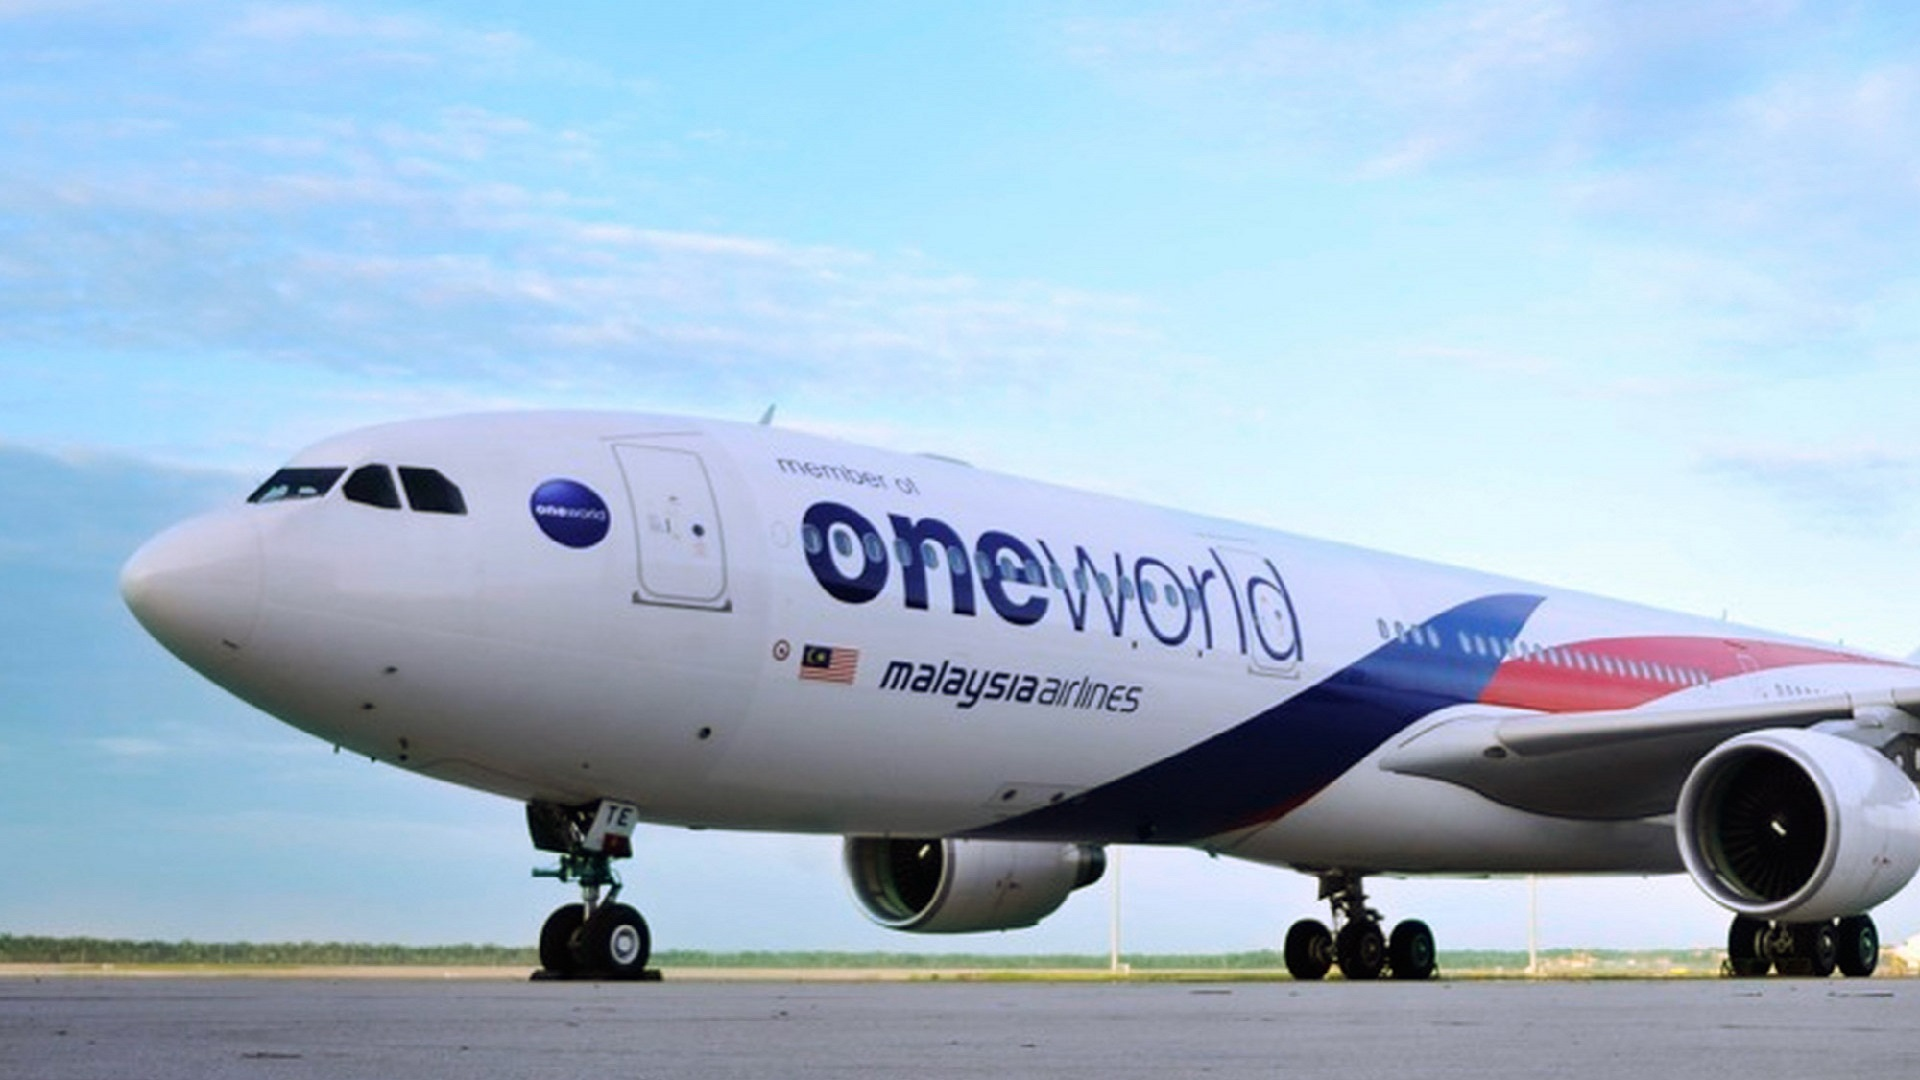 Malaysia Airlines with One World livery | malaysiaiarlines.com